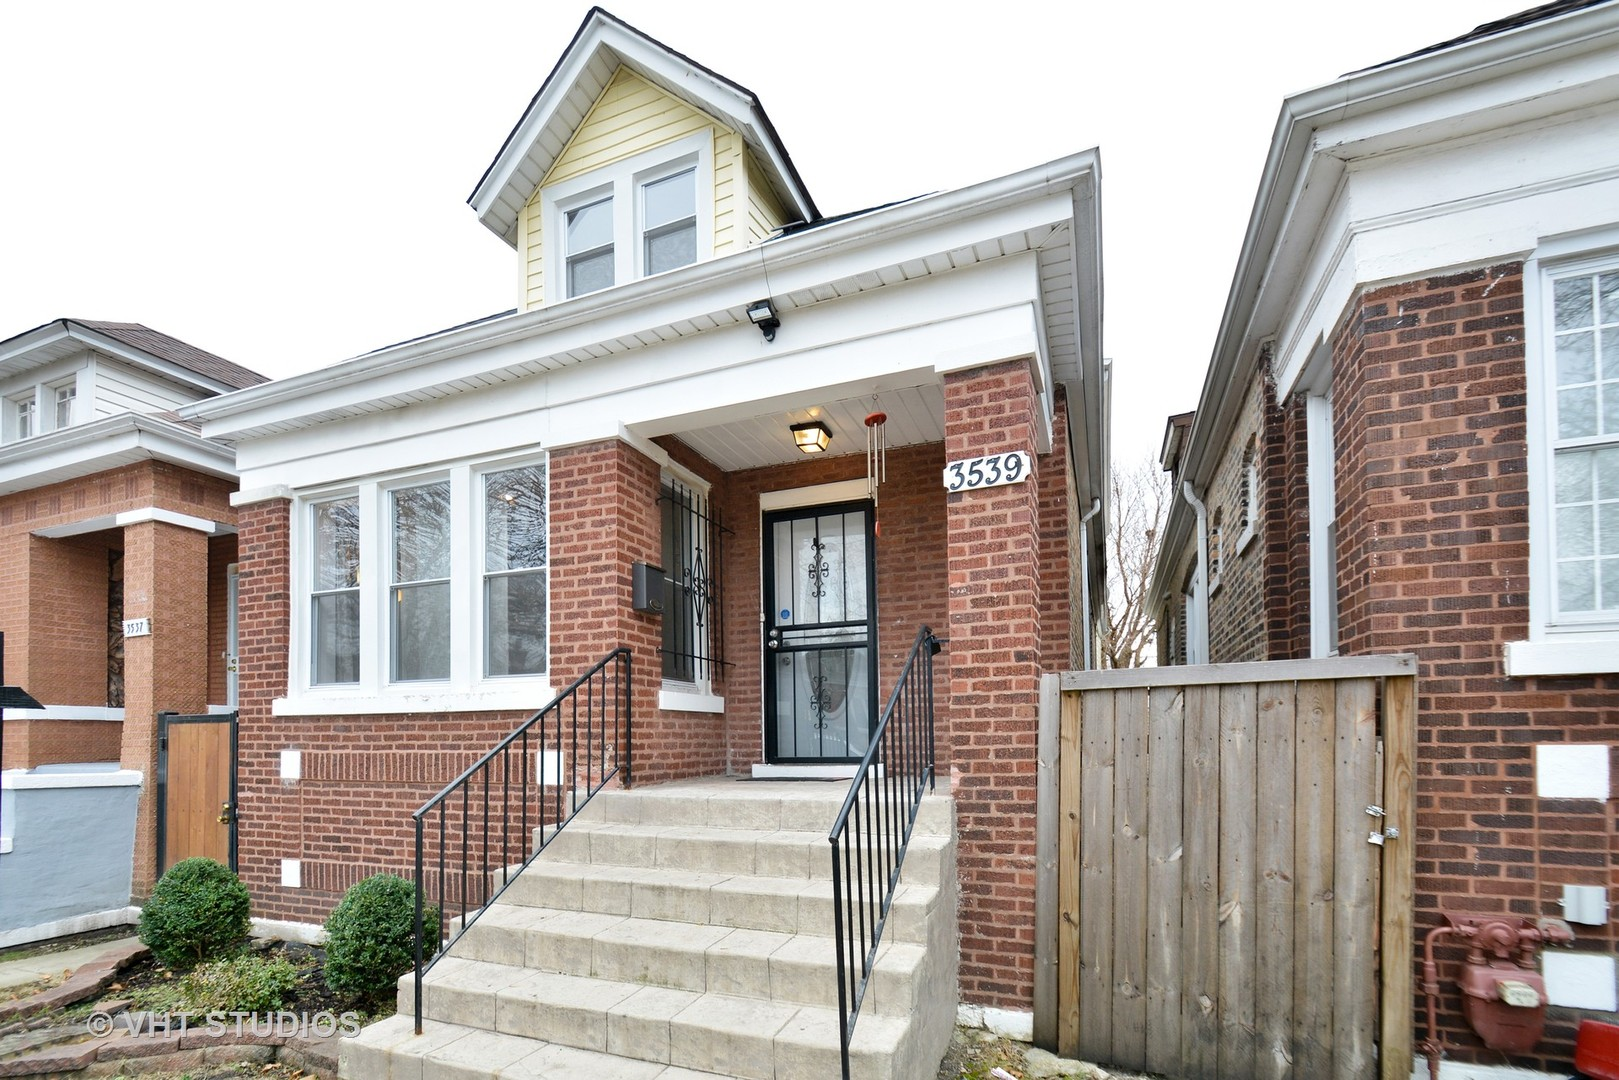 3539 WEST 60TH STREET, CHICAGO, IL 60629